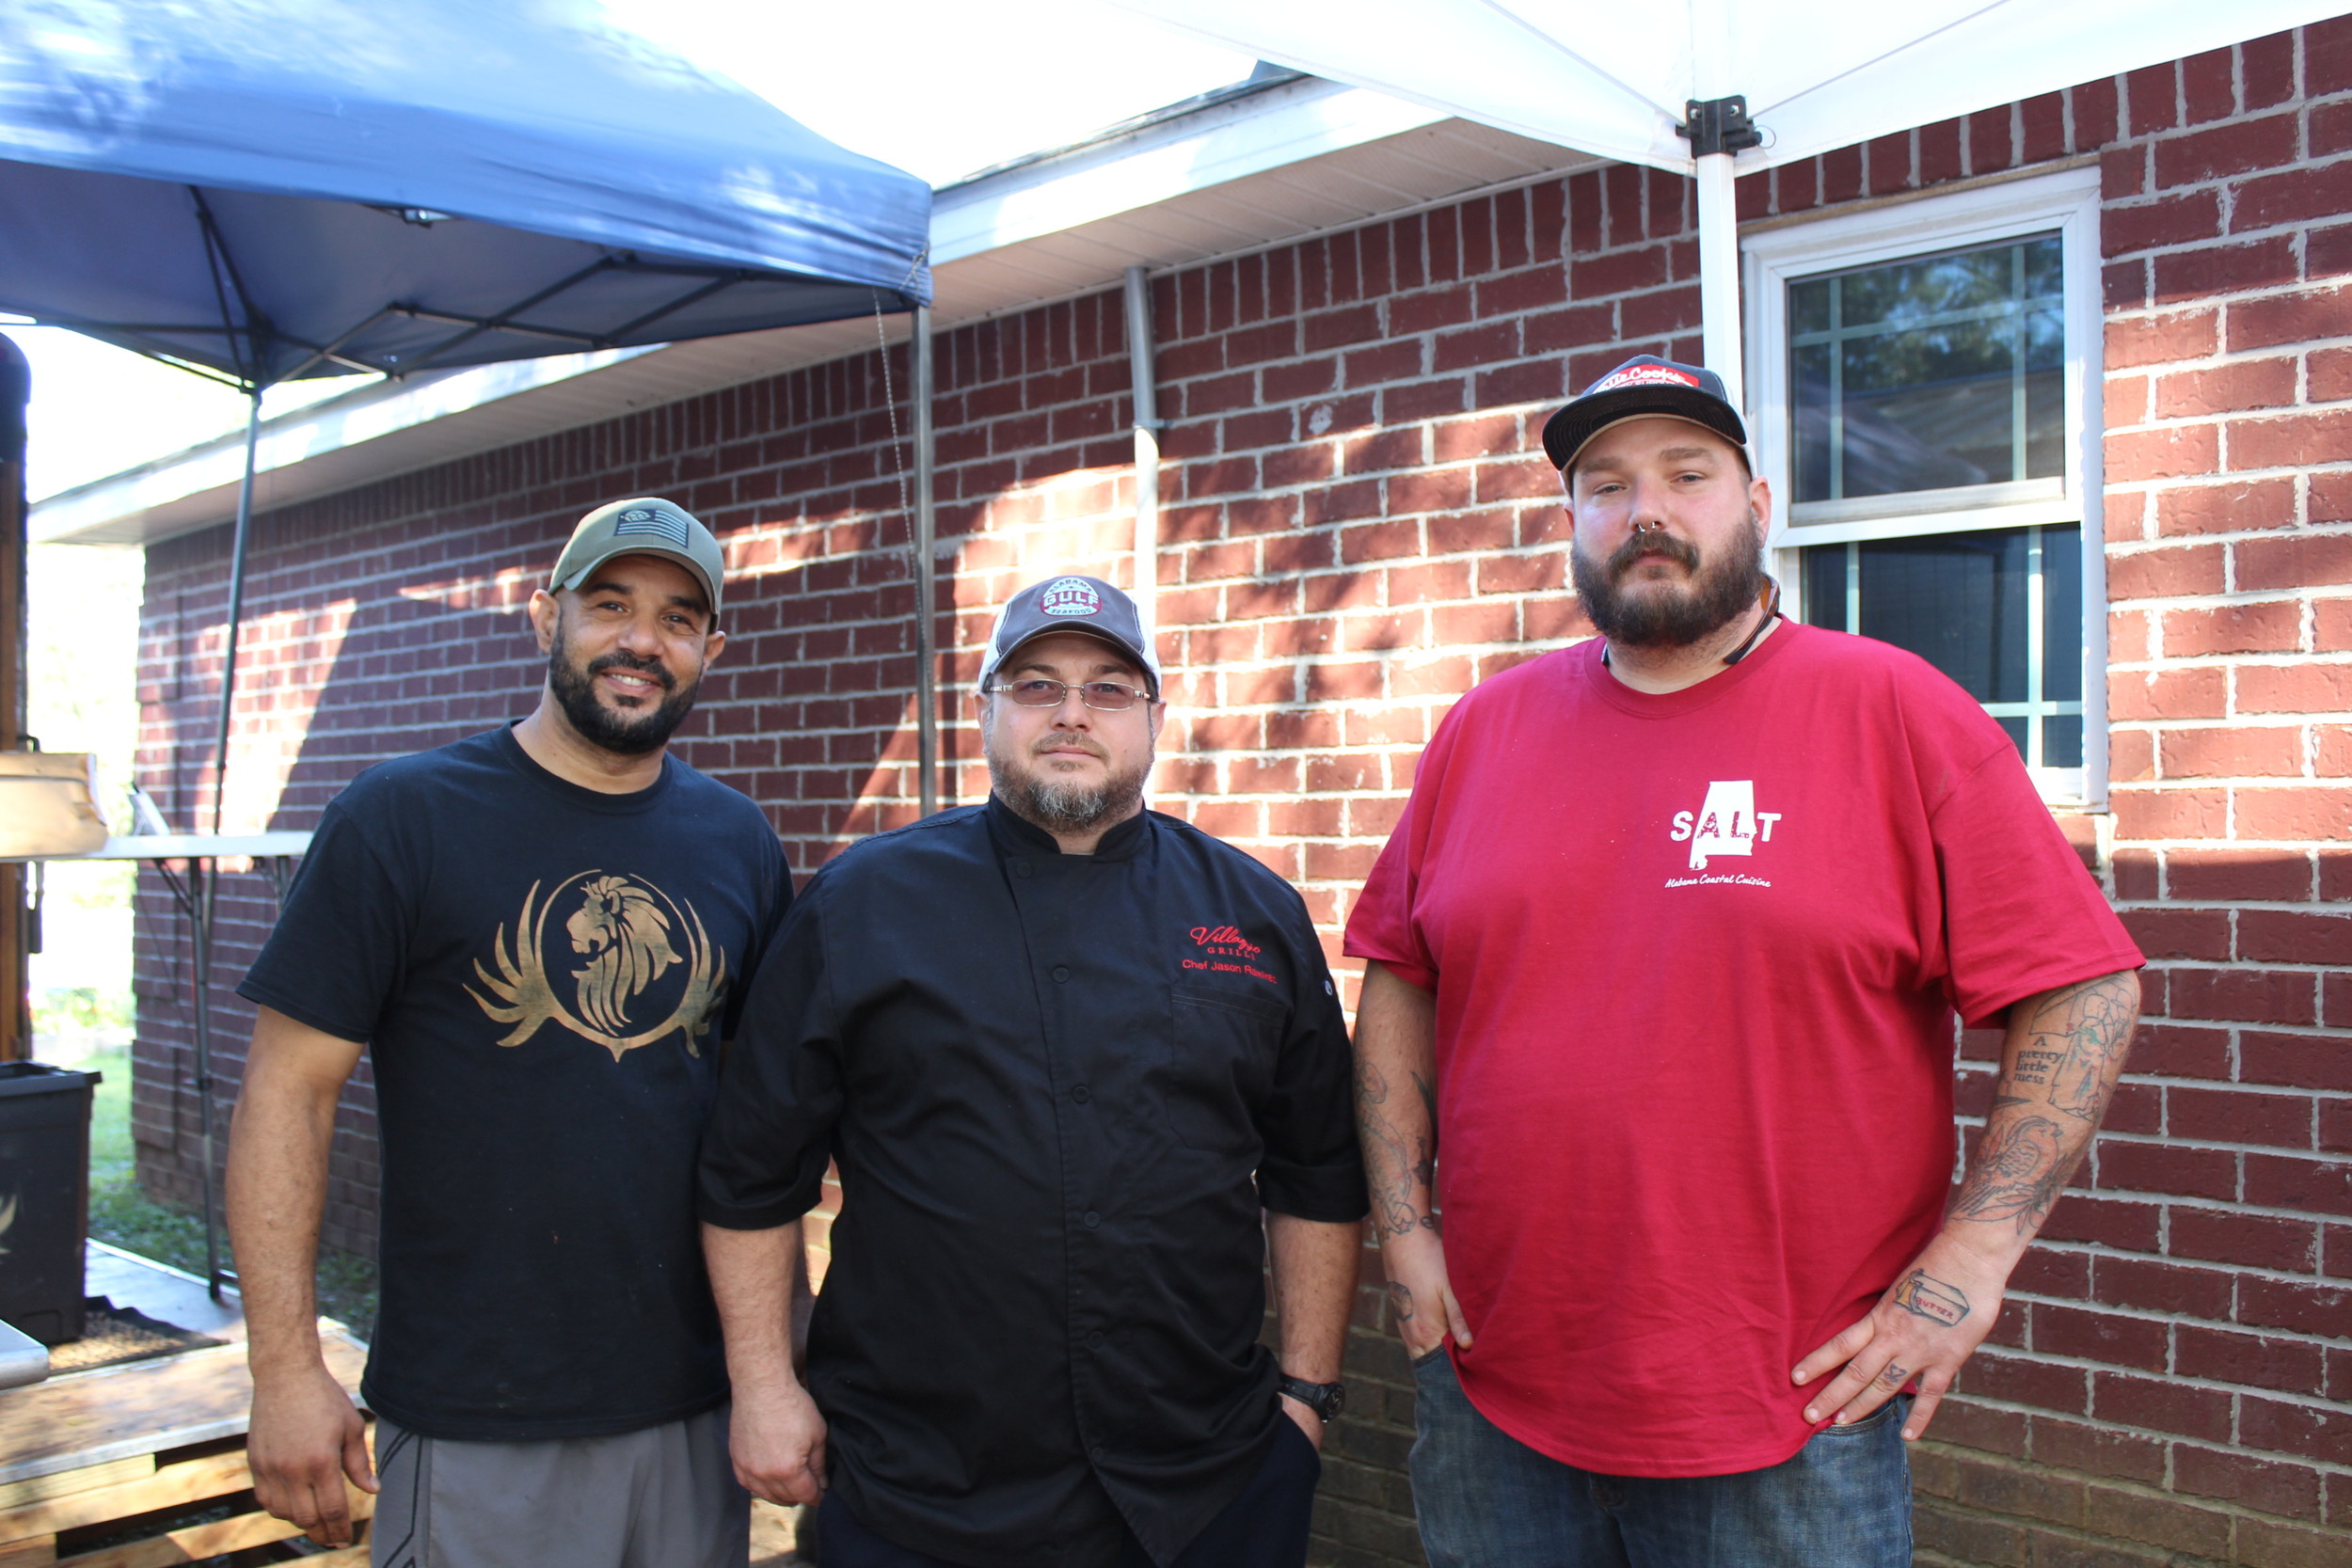 During the World Food Championship Herb & Pepper Farm becomes the hottest place for chefs to pick fresh produce. Pictured left to right are Chef Hiram Quintana, of The Lions Den, Jason Ramirez, Executive Chef of Villaggio Grille, Chef Roberts of SALT, who competed in the championship and regularly rely on Herb & Pepper for their produce.